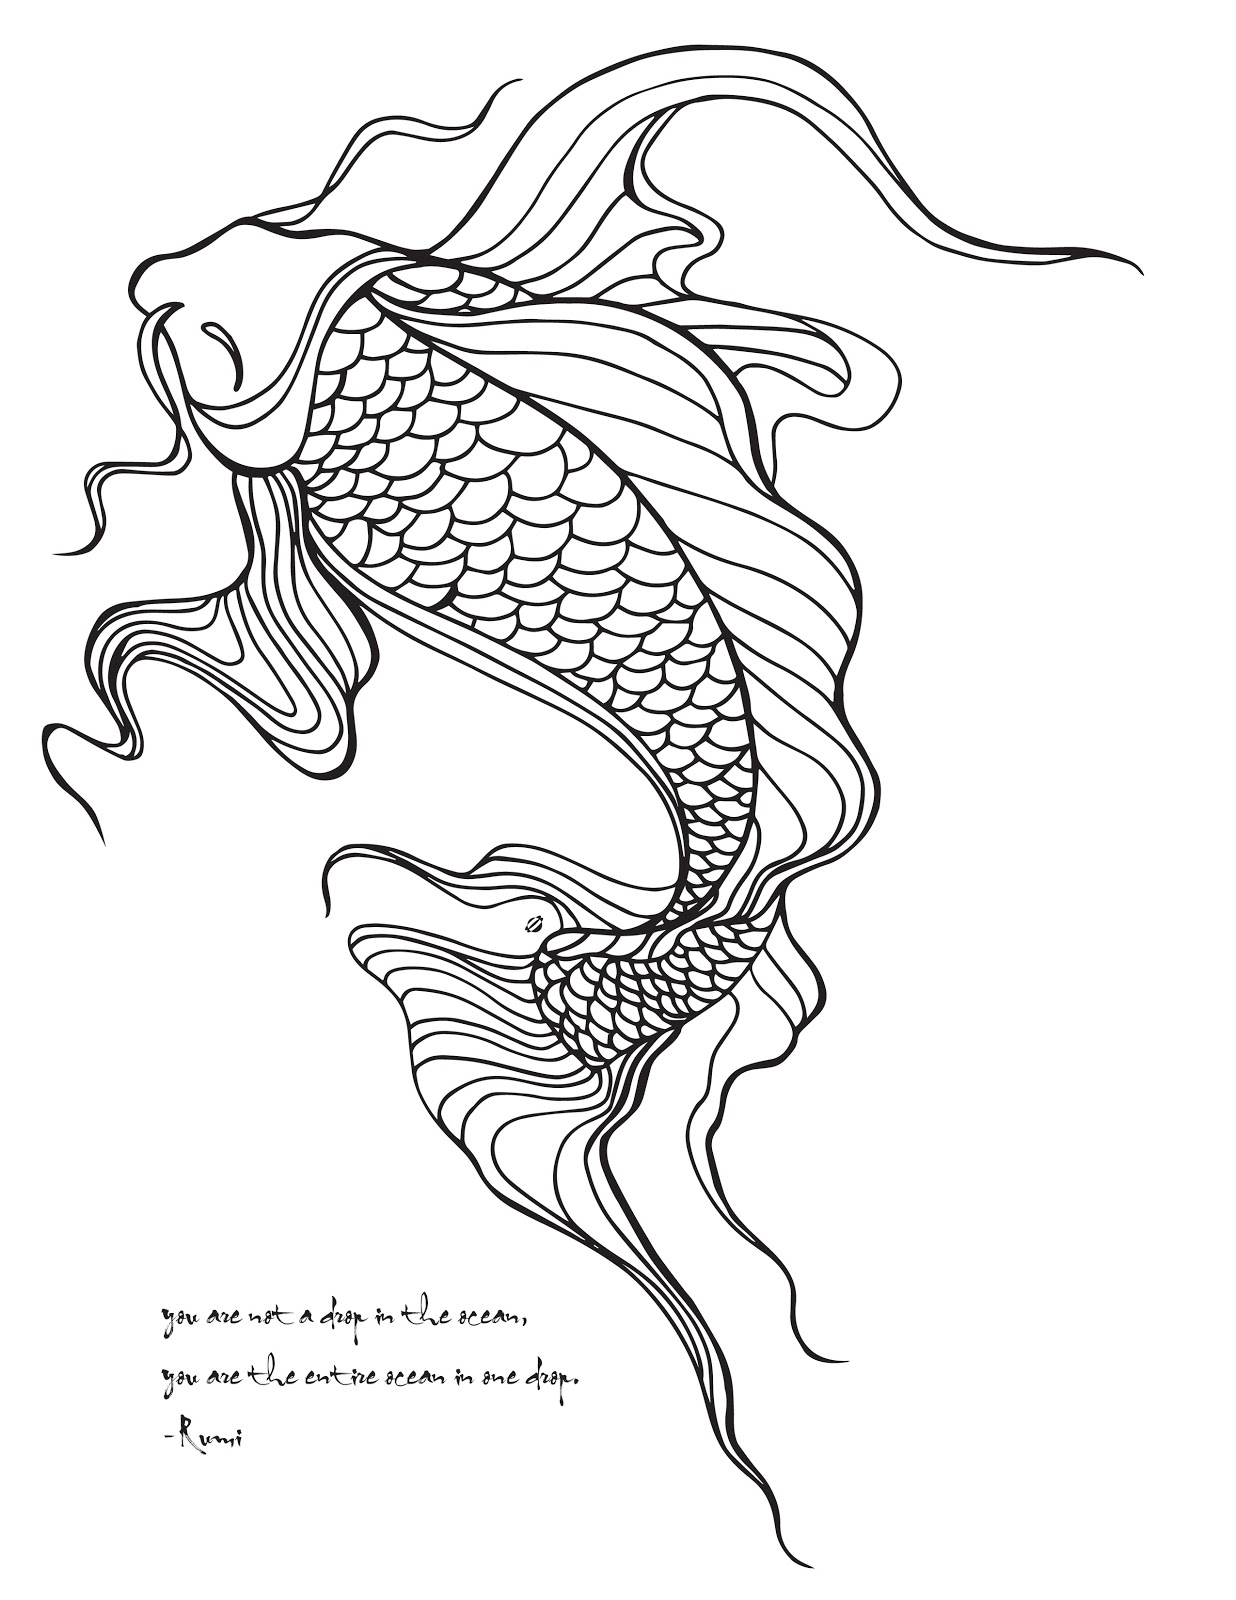 LostBumblebee ©2015 MDBN :: GROWN UP COLOURING / COLORING SHEETS :: KOI FISH ::  Free Donate to download Printables :: Personal Use Only.